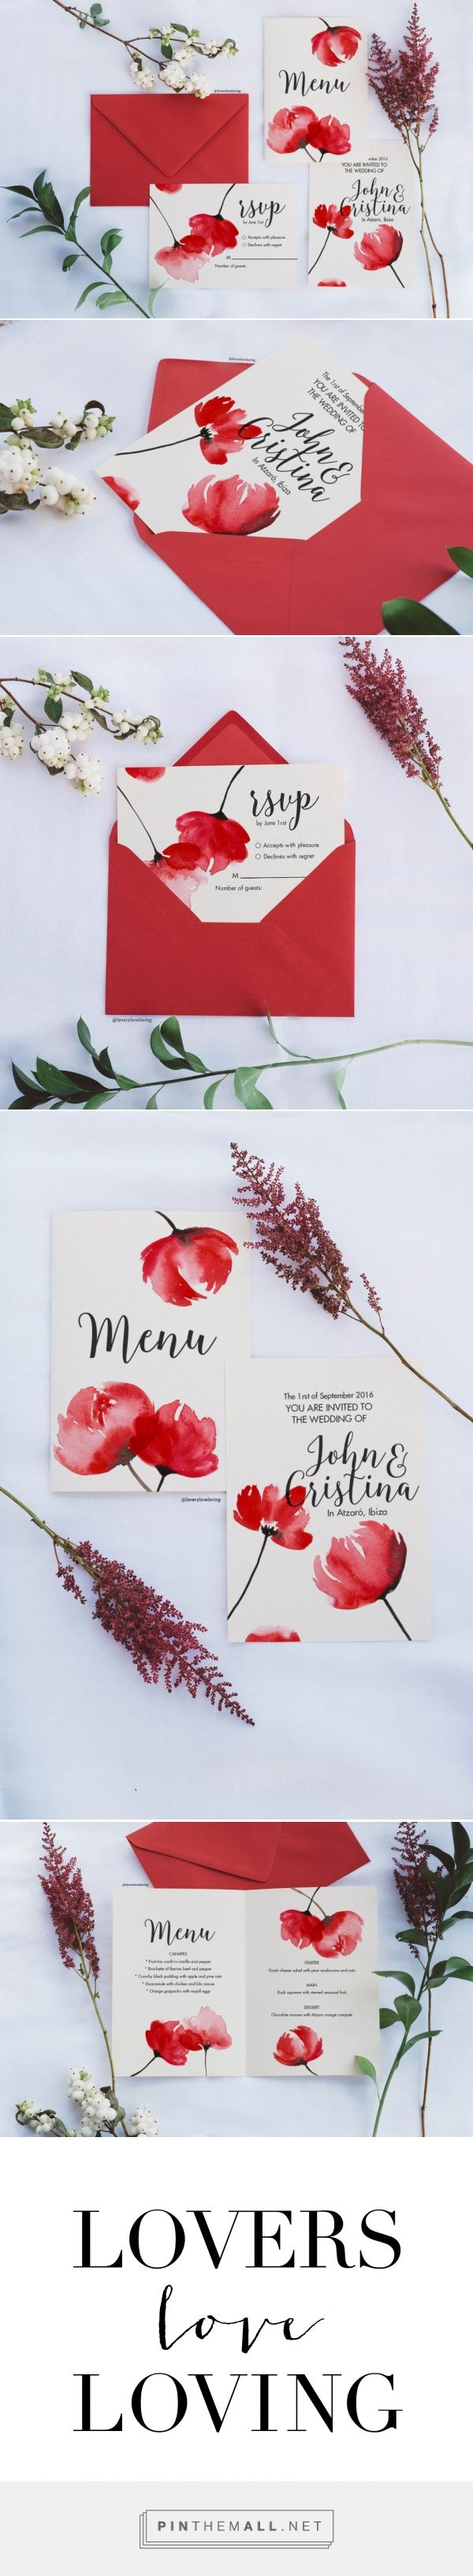 Watercolor floral invitation: Pantone Fiesta » Lovers Love Loving   #watercolor #wedding #invitation #unique #design #flowers